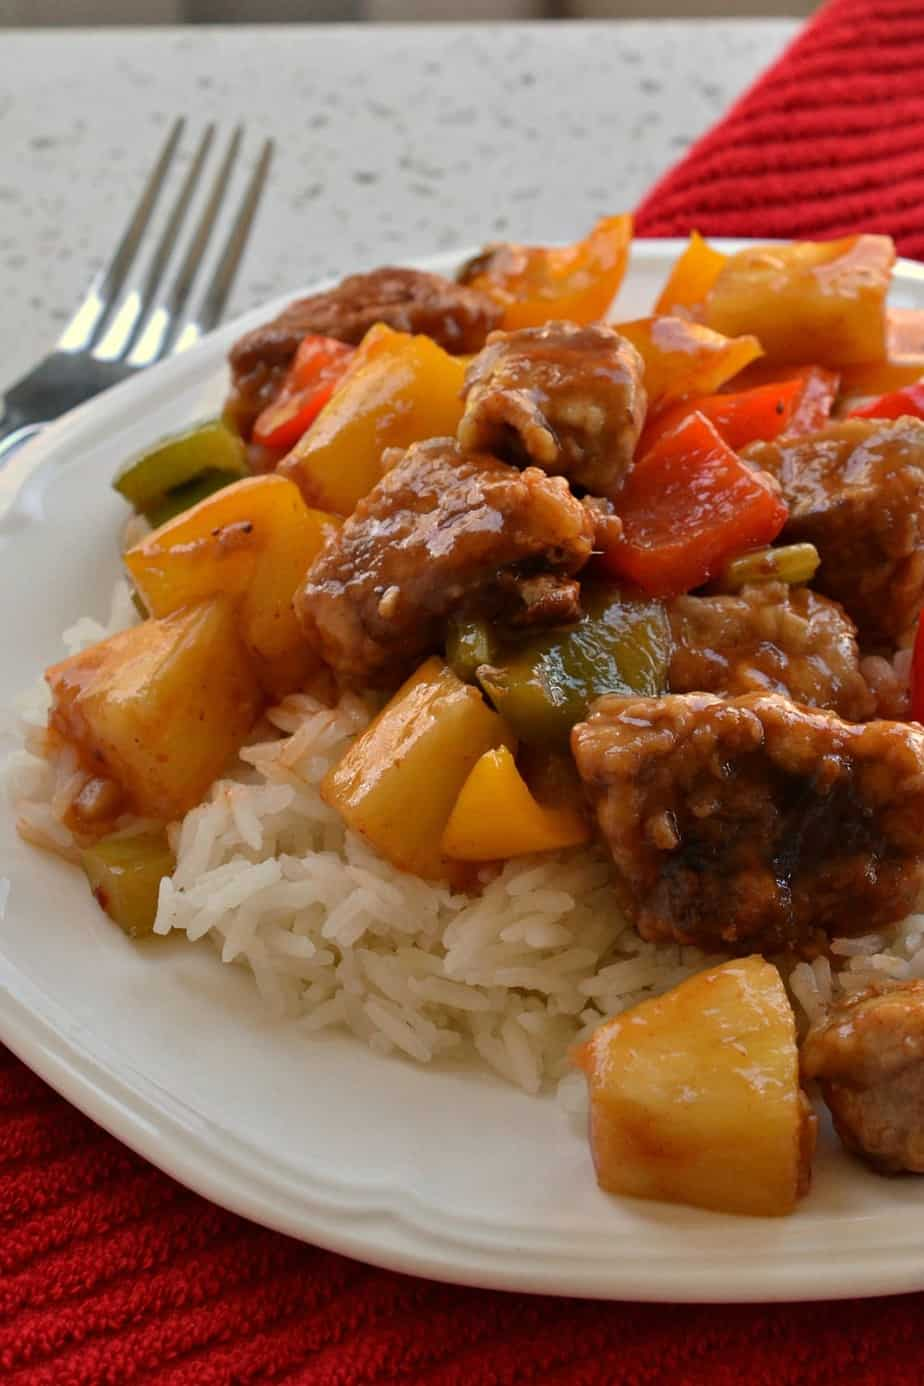 This Sweet Sour Pork brings crispy fried pork together with garlic, celery, sweet bell peppers and pineapple.